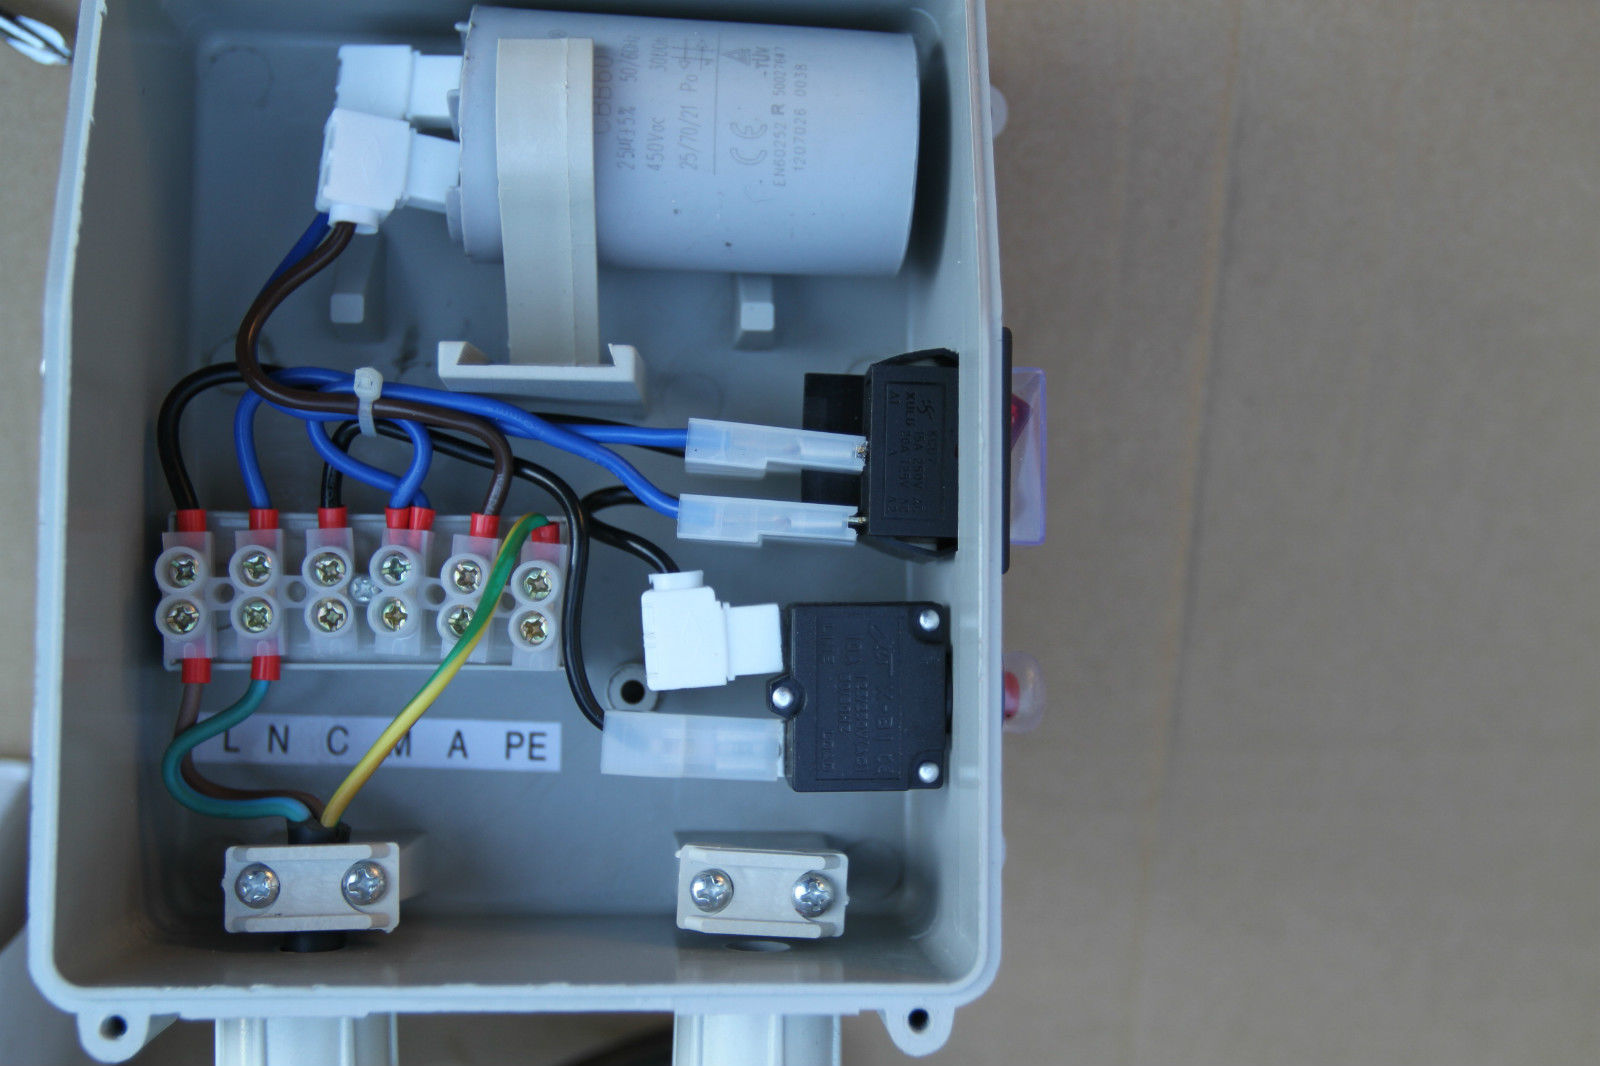 201495_controlbox hallmark industries pump control box well pump control box wiring diagram at gsmx.co